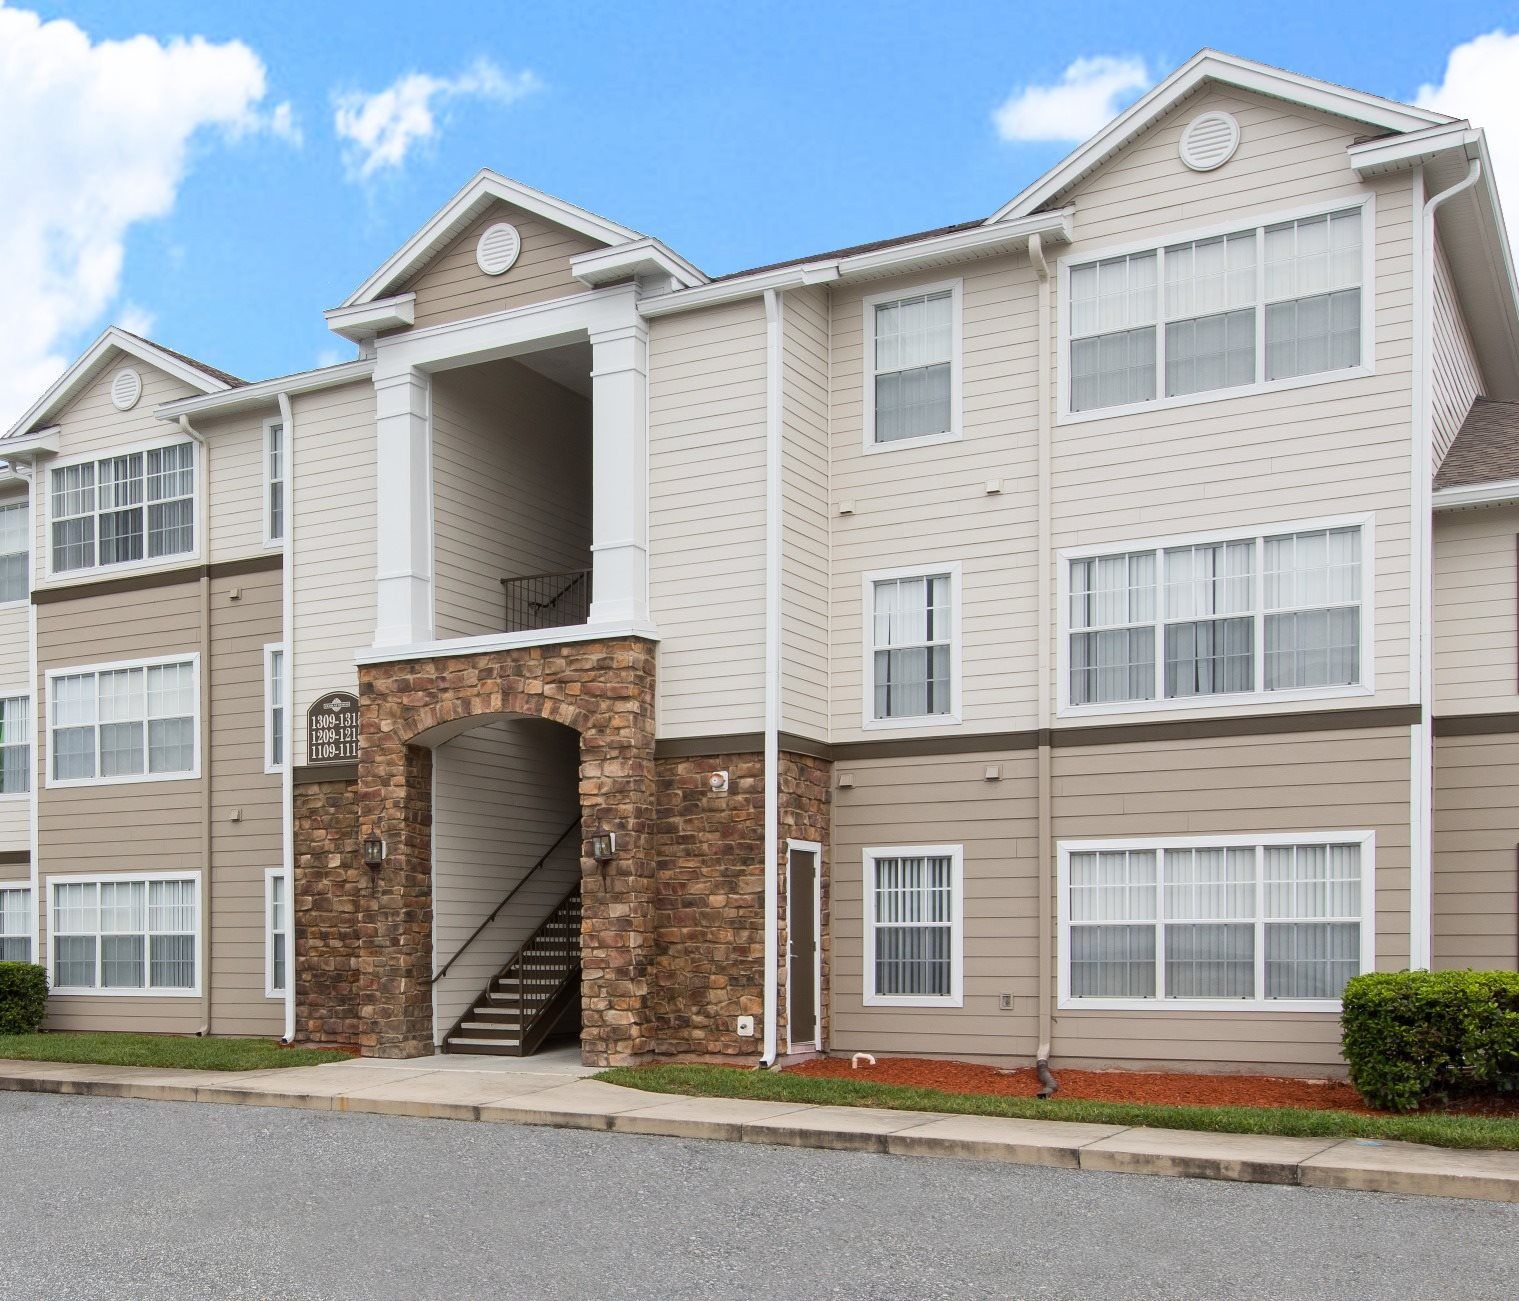 Club At Eustis Apartments Eustis Fl